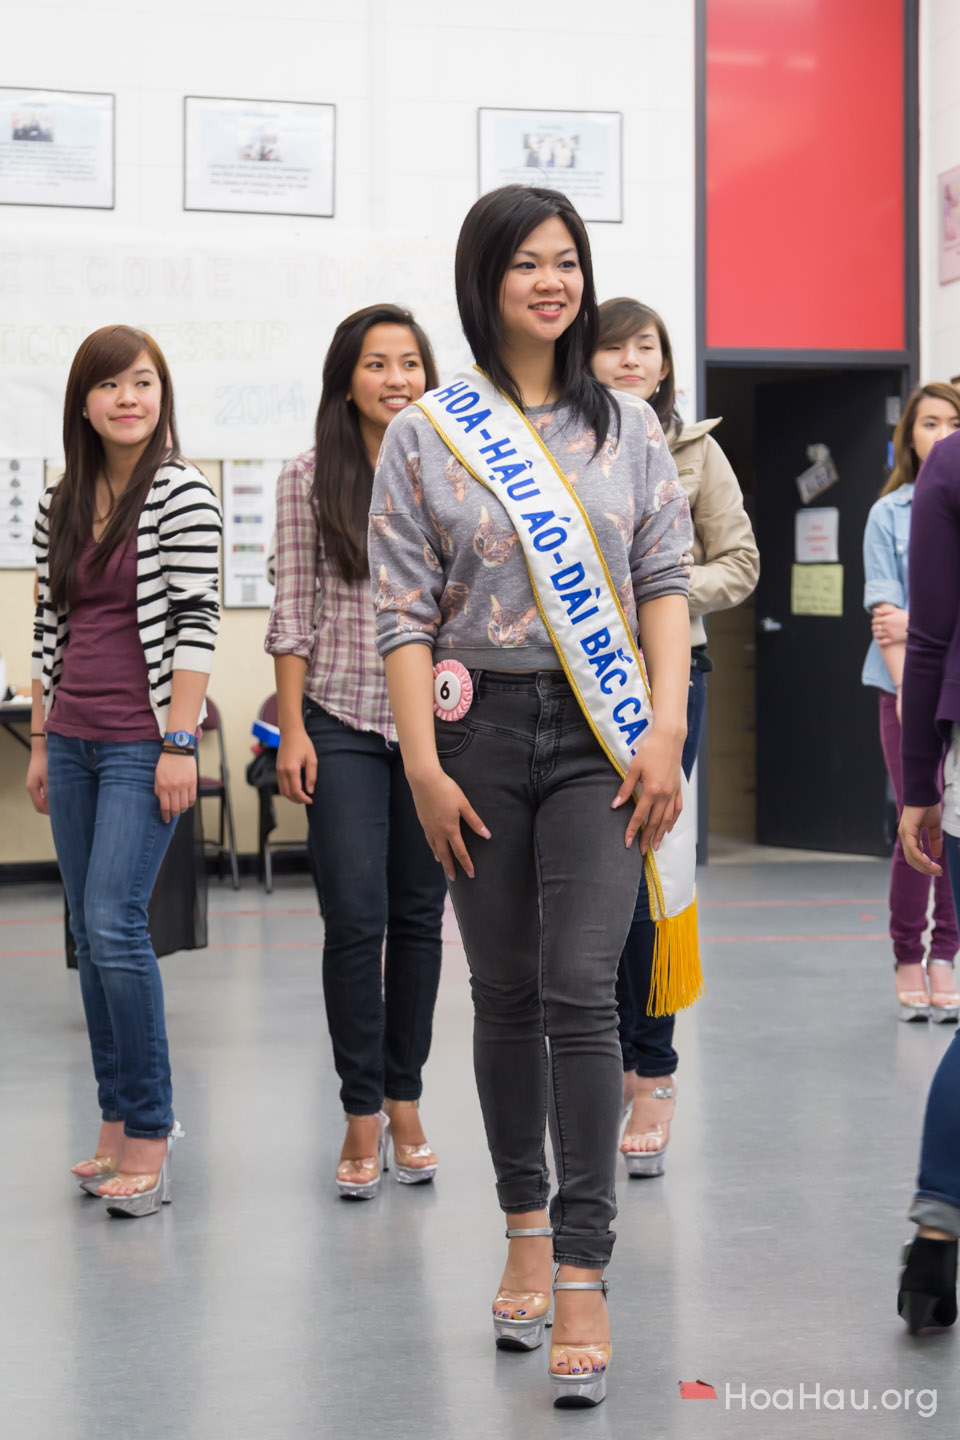 Contestant Practice - January 18, 2014 at Mt Pleasant High School - Image 128